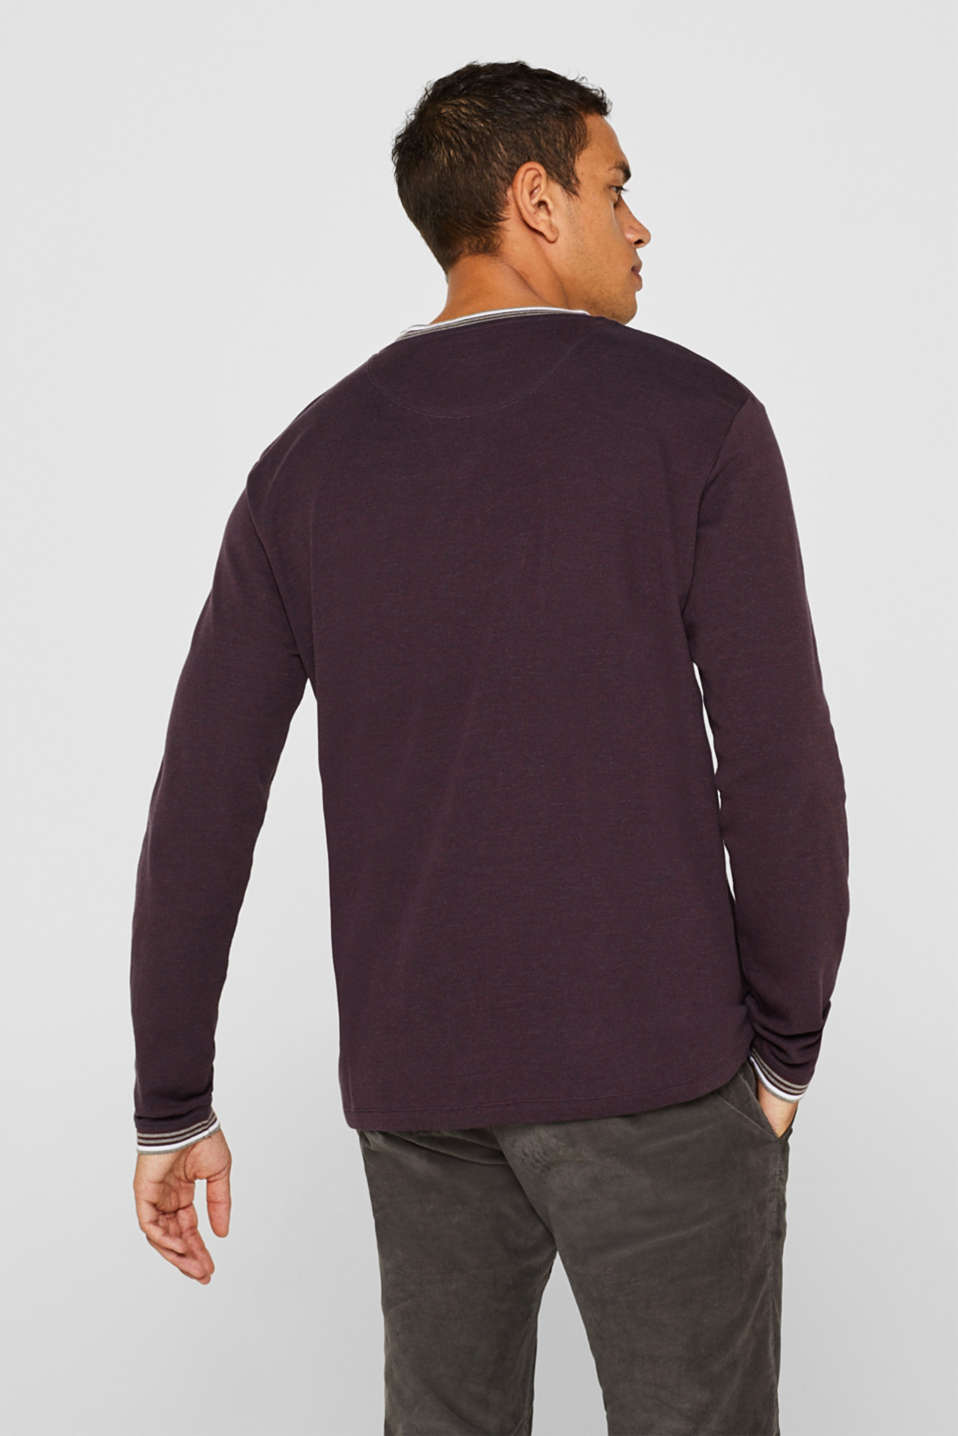 Long sleeve jersey top in a layered look, BORDEAUX RED, detail image number 3